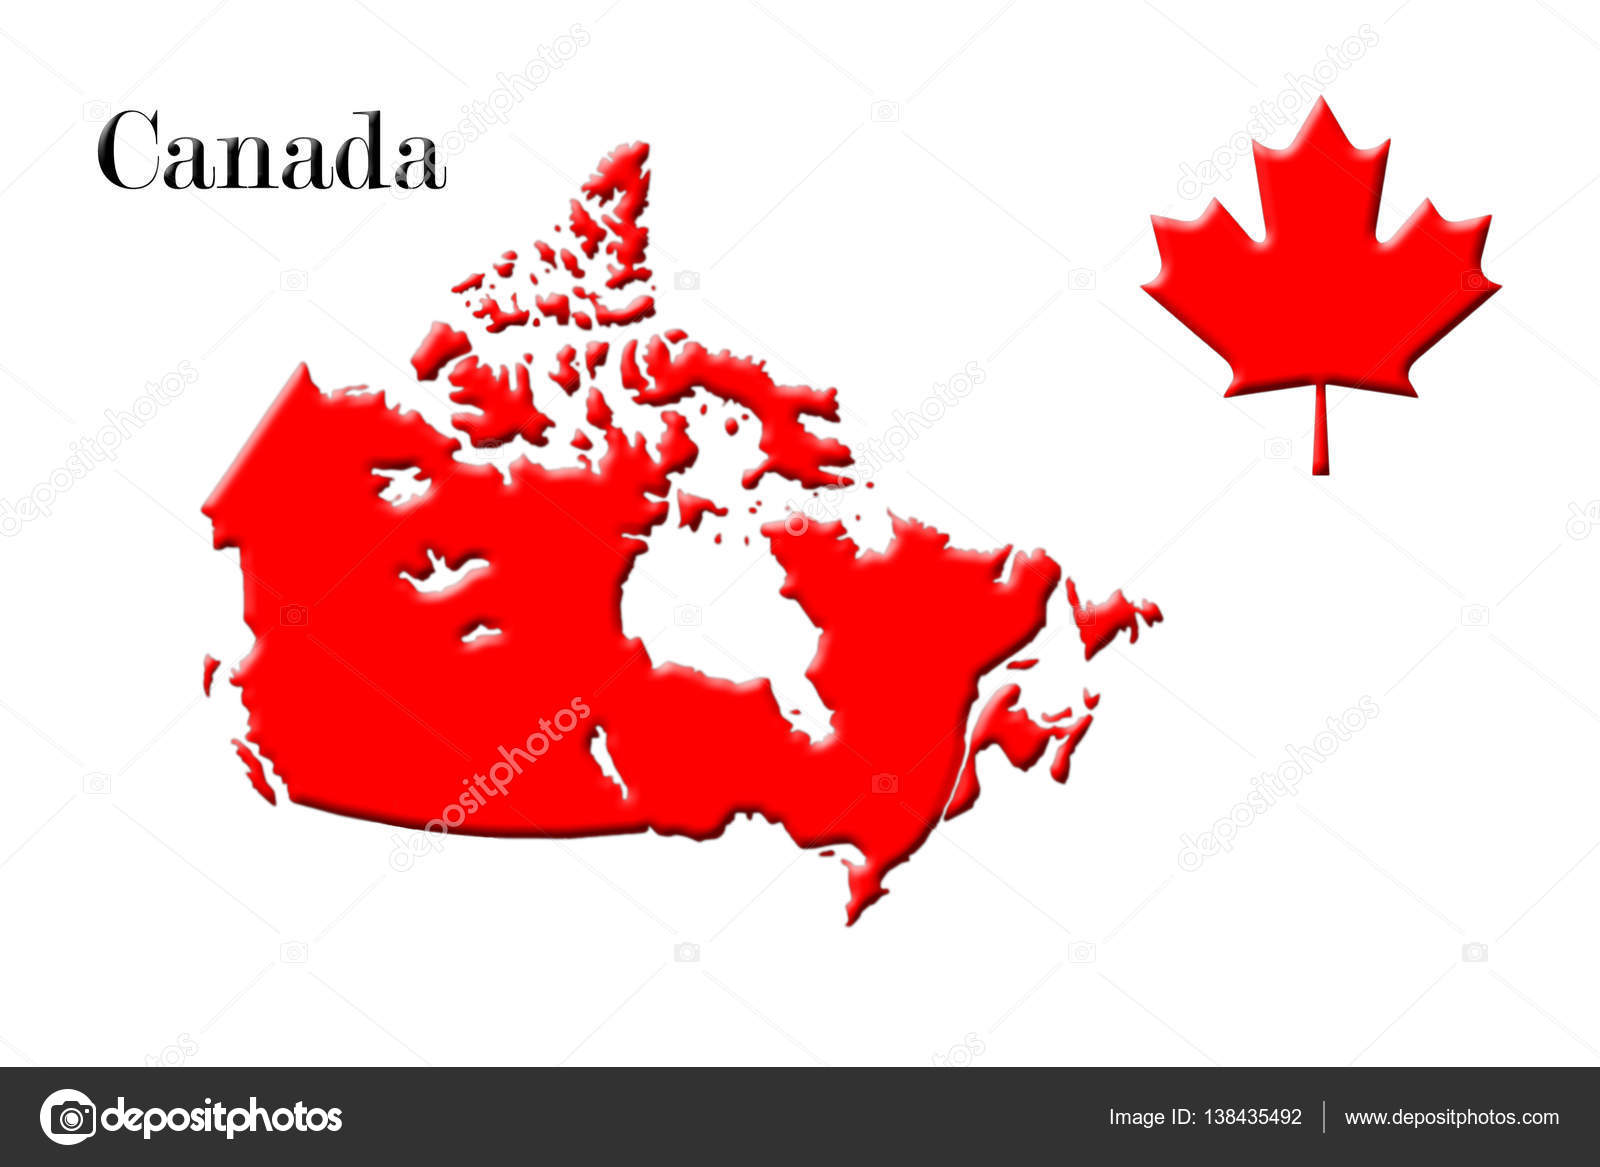 Canada Map Flag.Canadian Map With Flag On It 3d Rendering Stock Photo